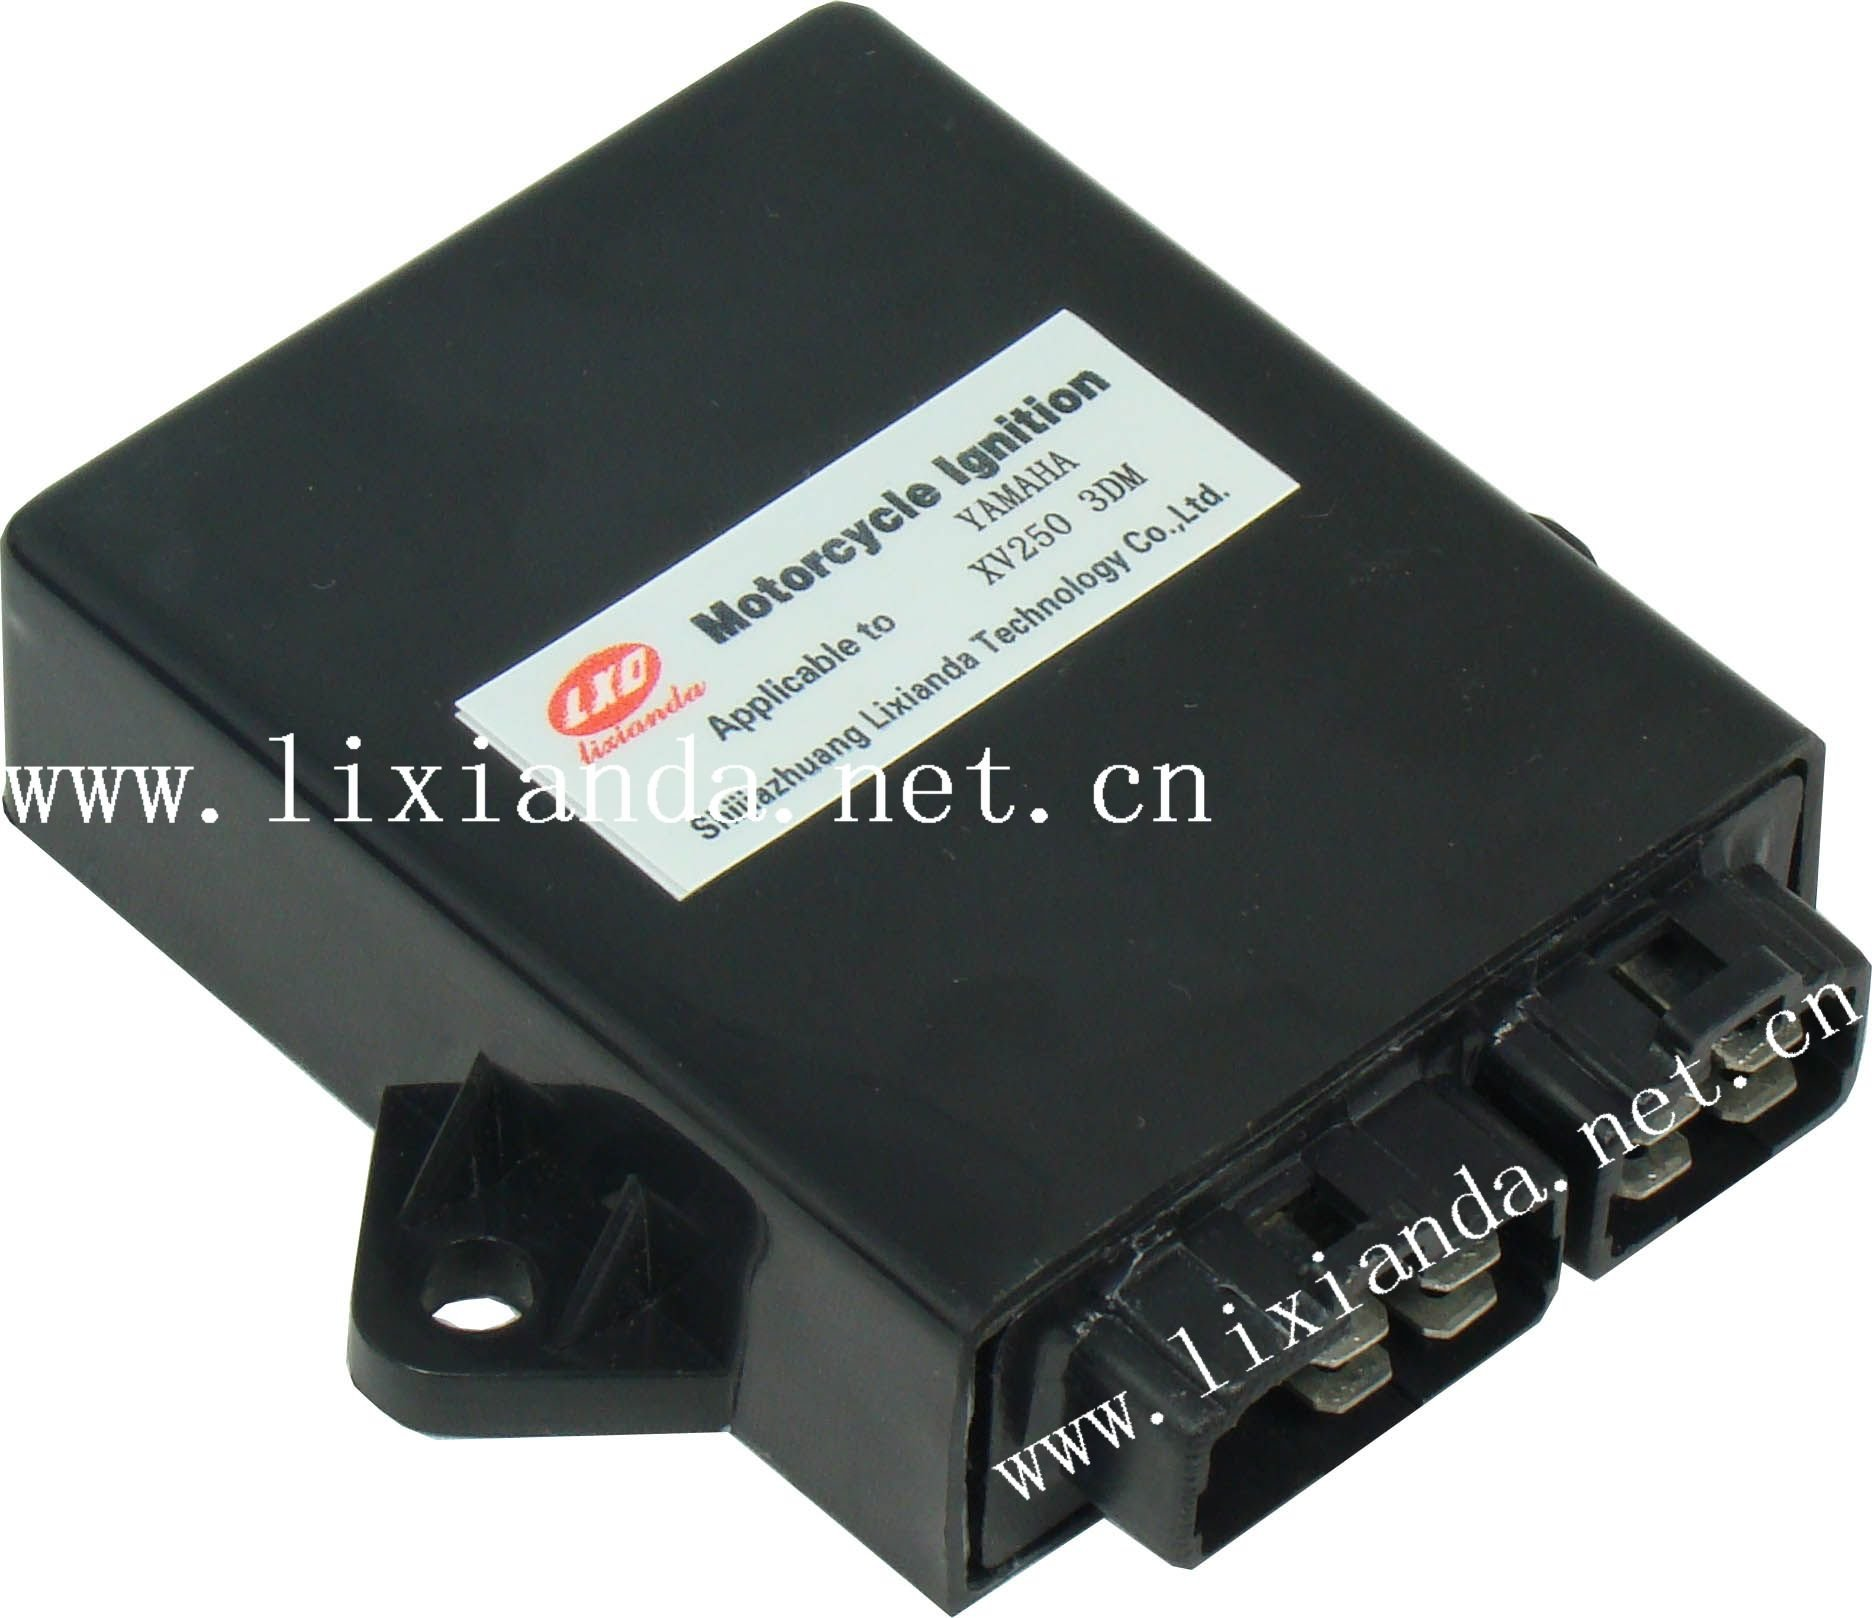 New product digital electronic motorcycle CDI UNIT XV250 3DM for YAMAHA(China)